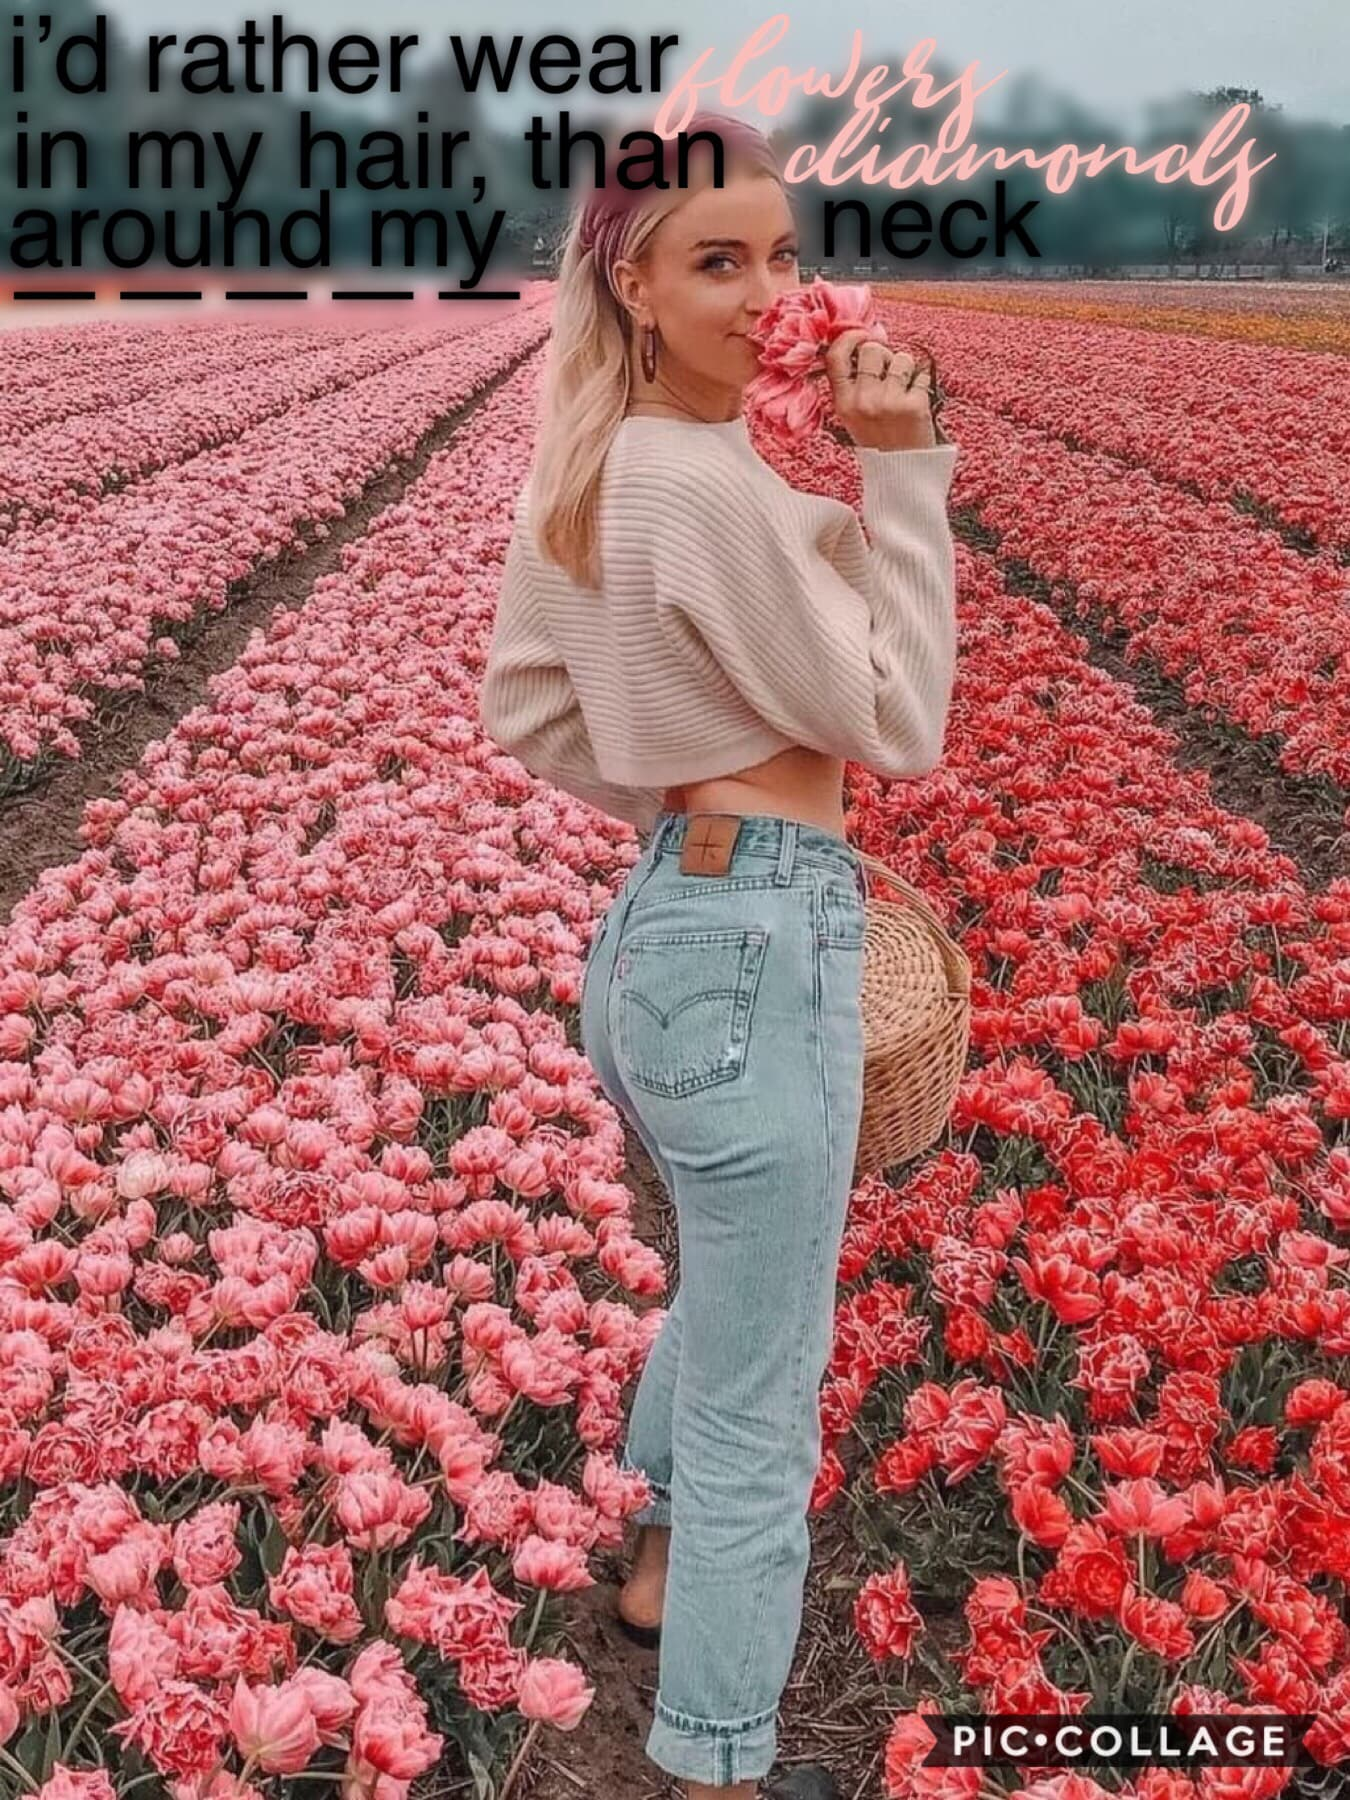 tap💓 what do you think? going shopping tomorrow yay! qotd- jeans or trackies  aotd-trackies  collab? taylah💗